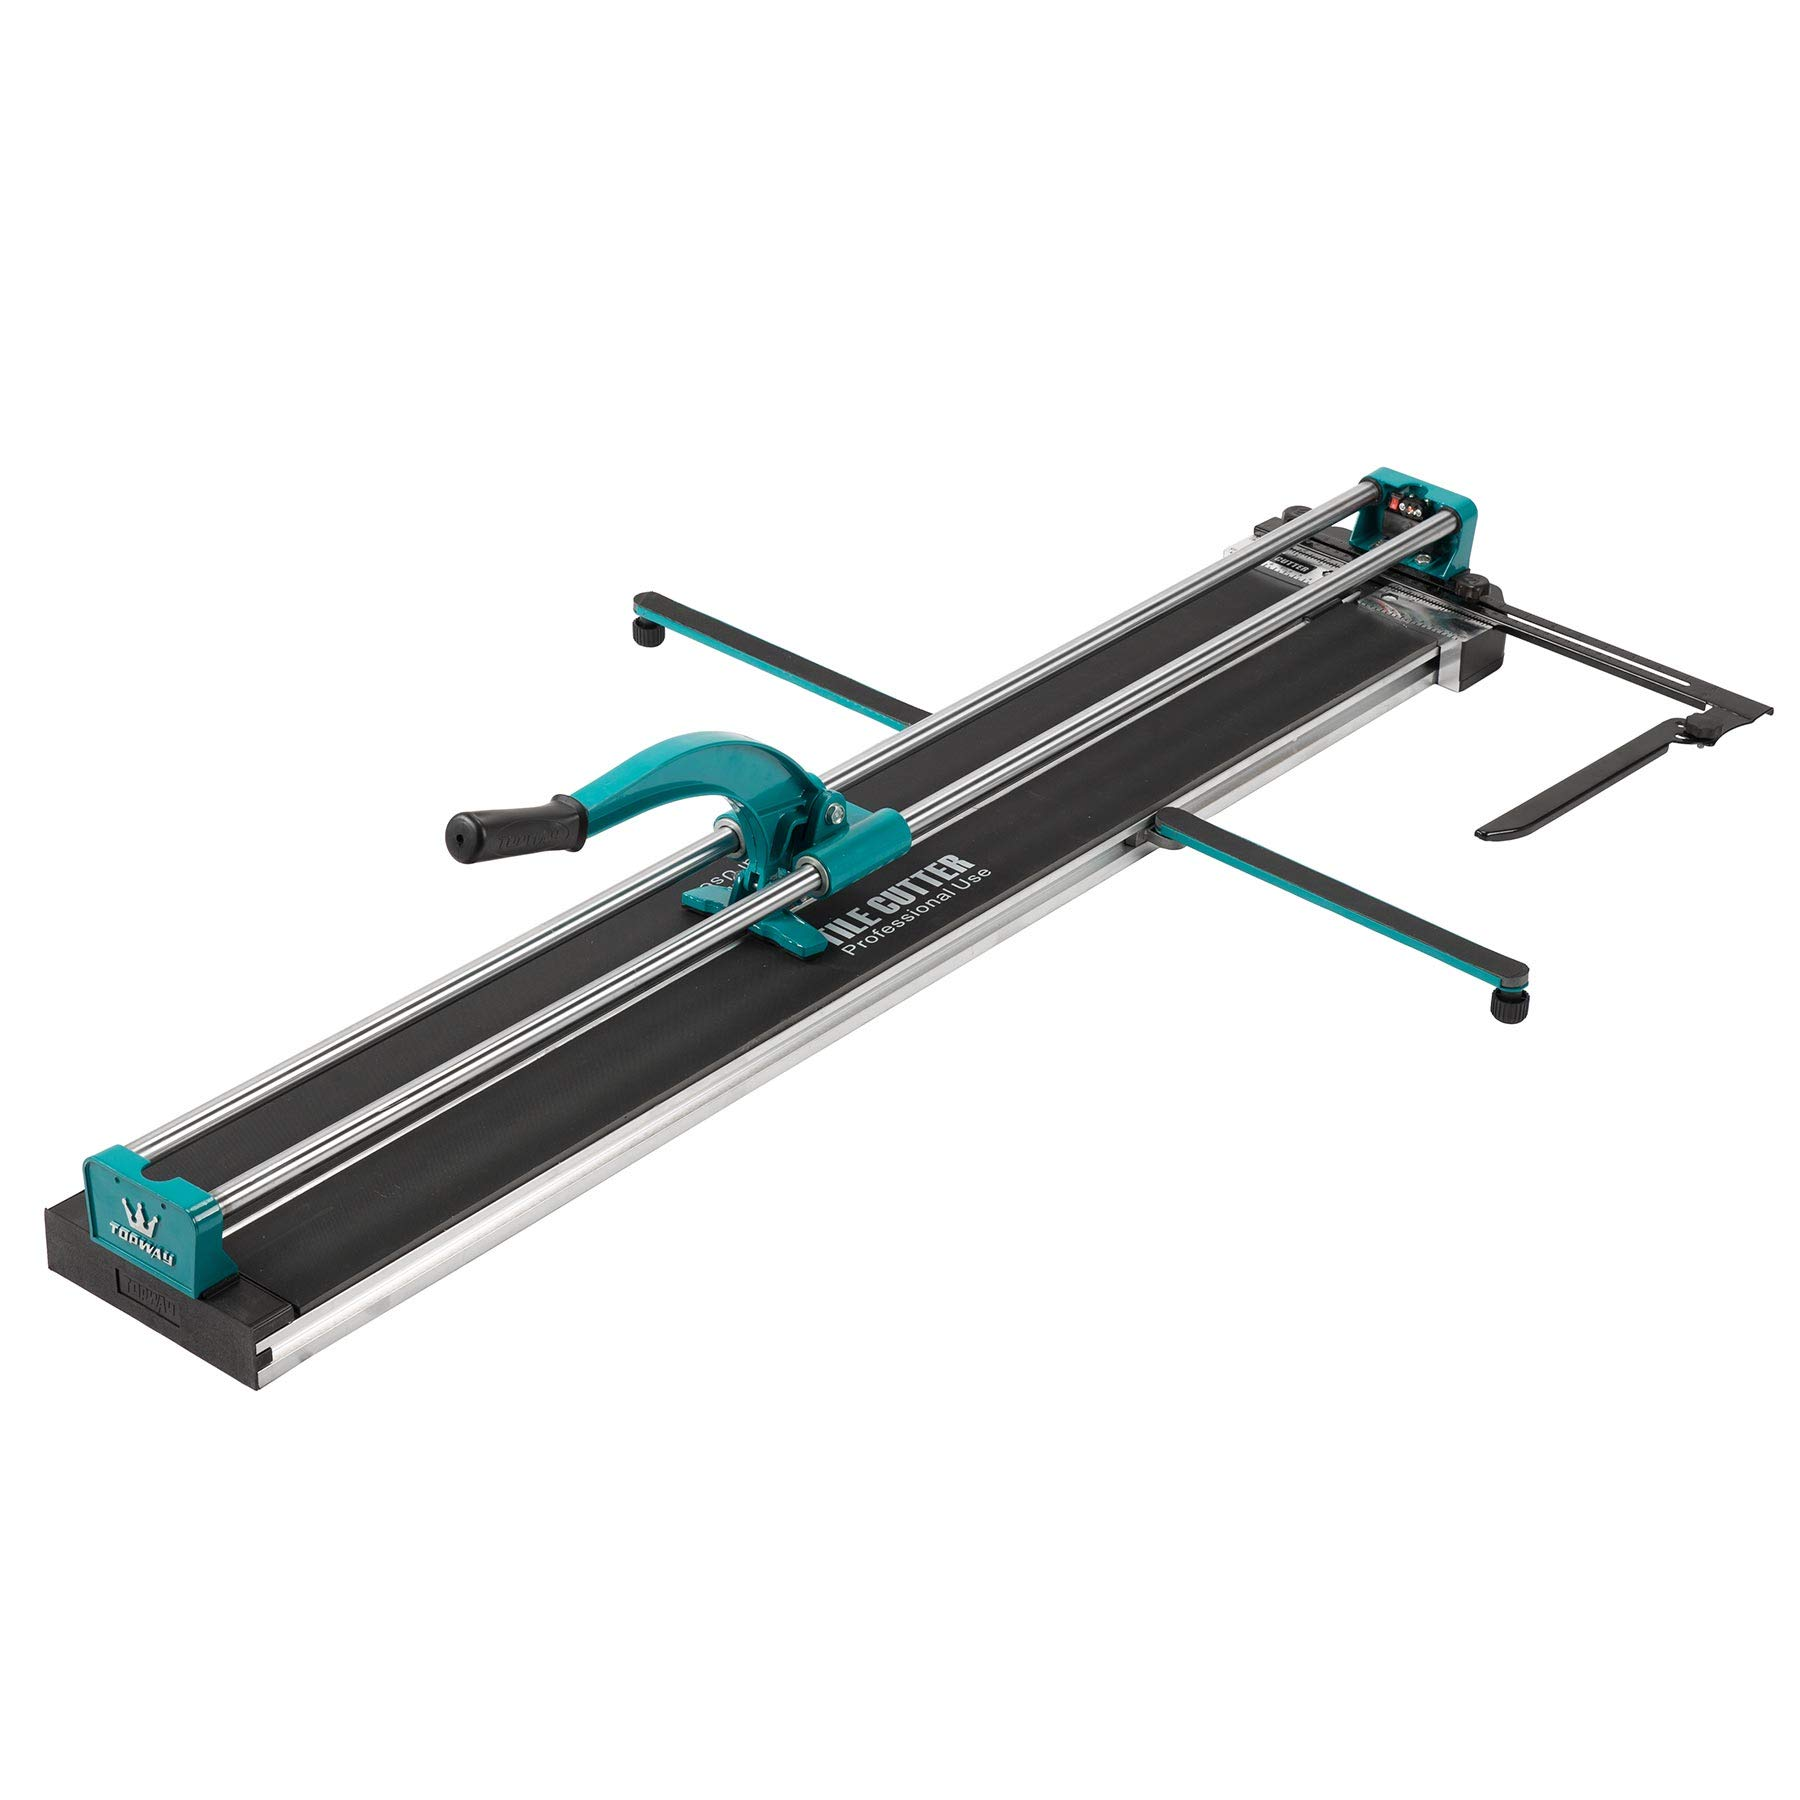 CO-Z Manual Tile Cutter 48'' Cutting Length Professional Porcelain Ceramic Floor Tile Cutter Machine Adjustable Laser Guide for Precision Cutting (48 inch)